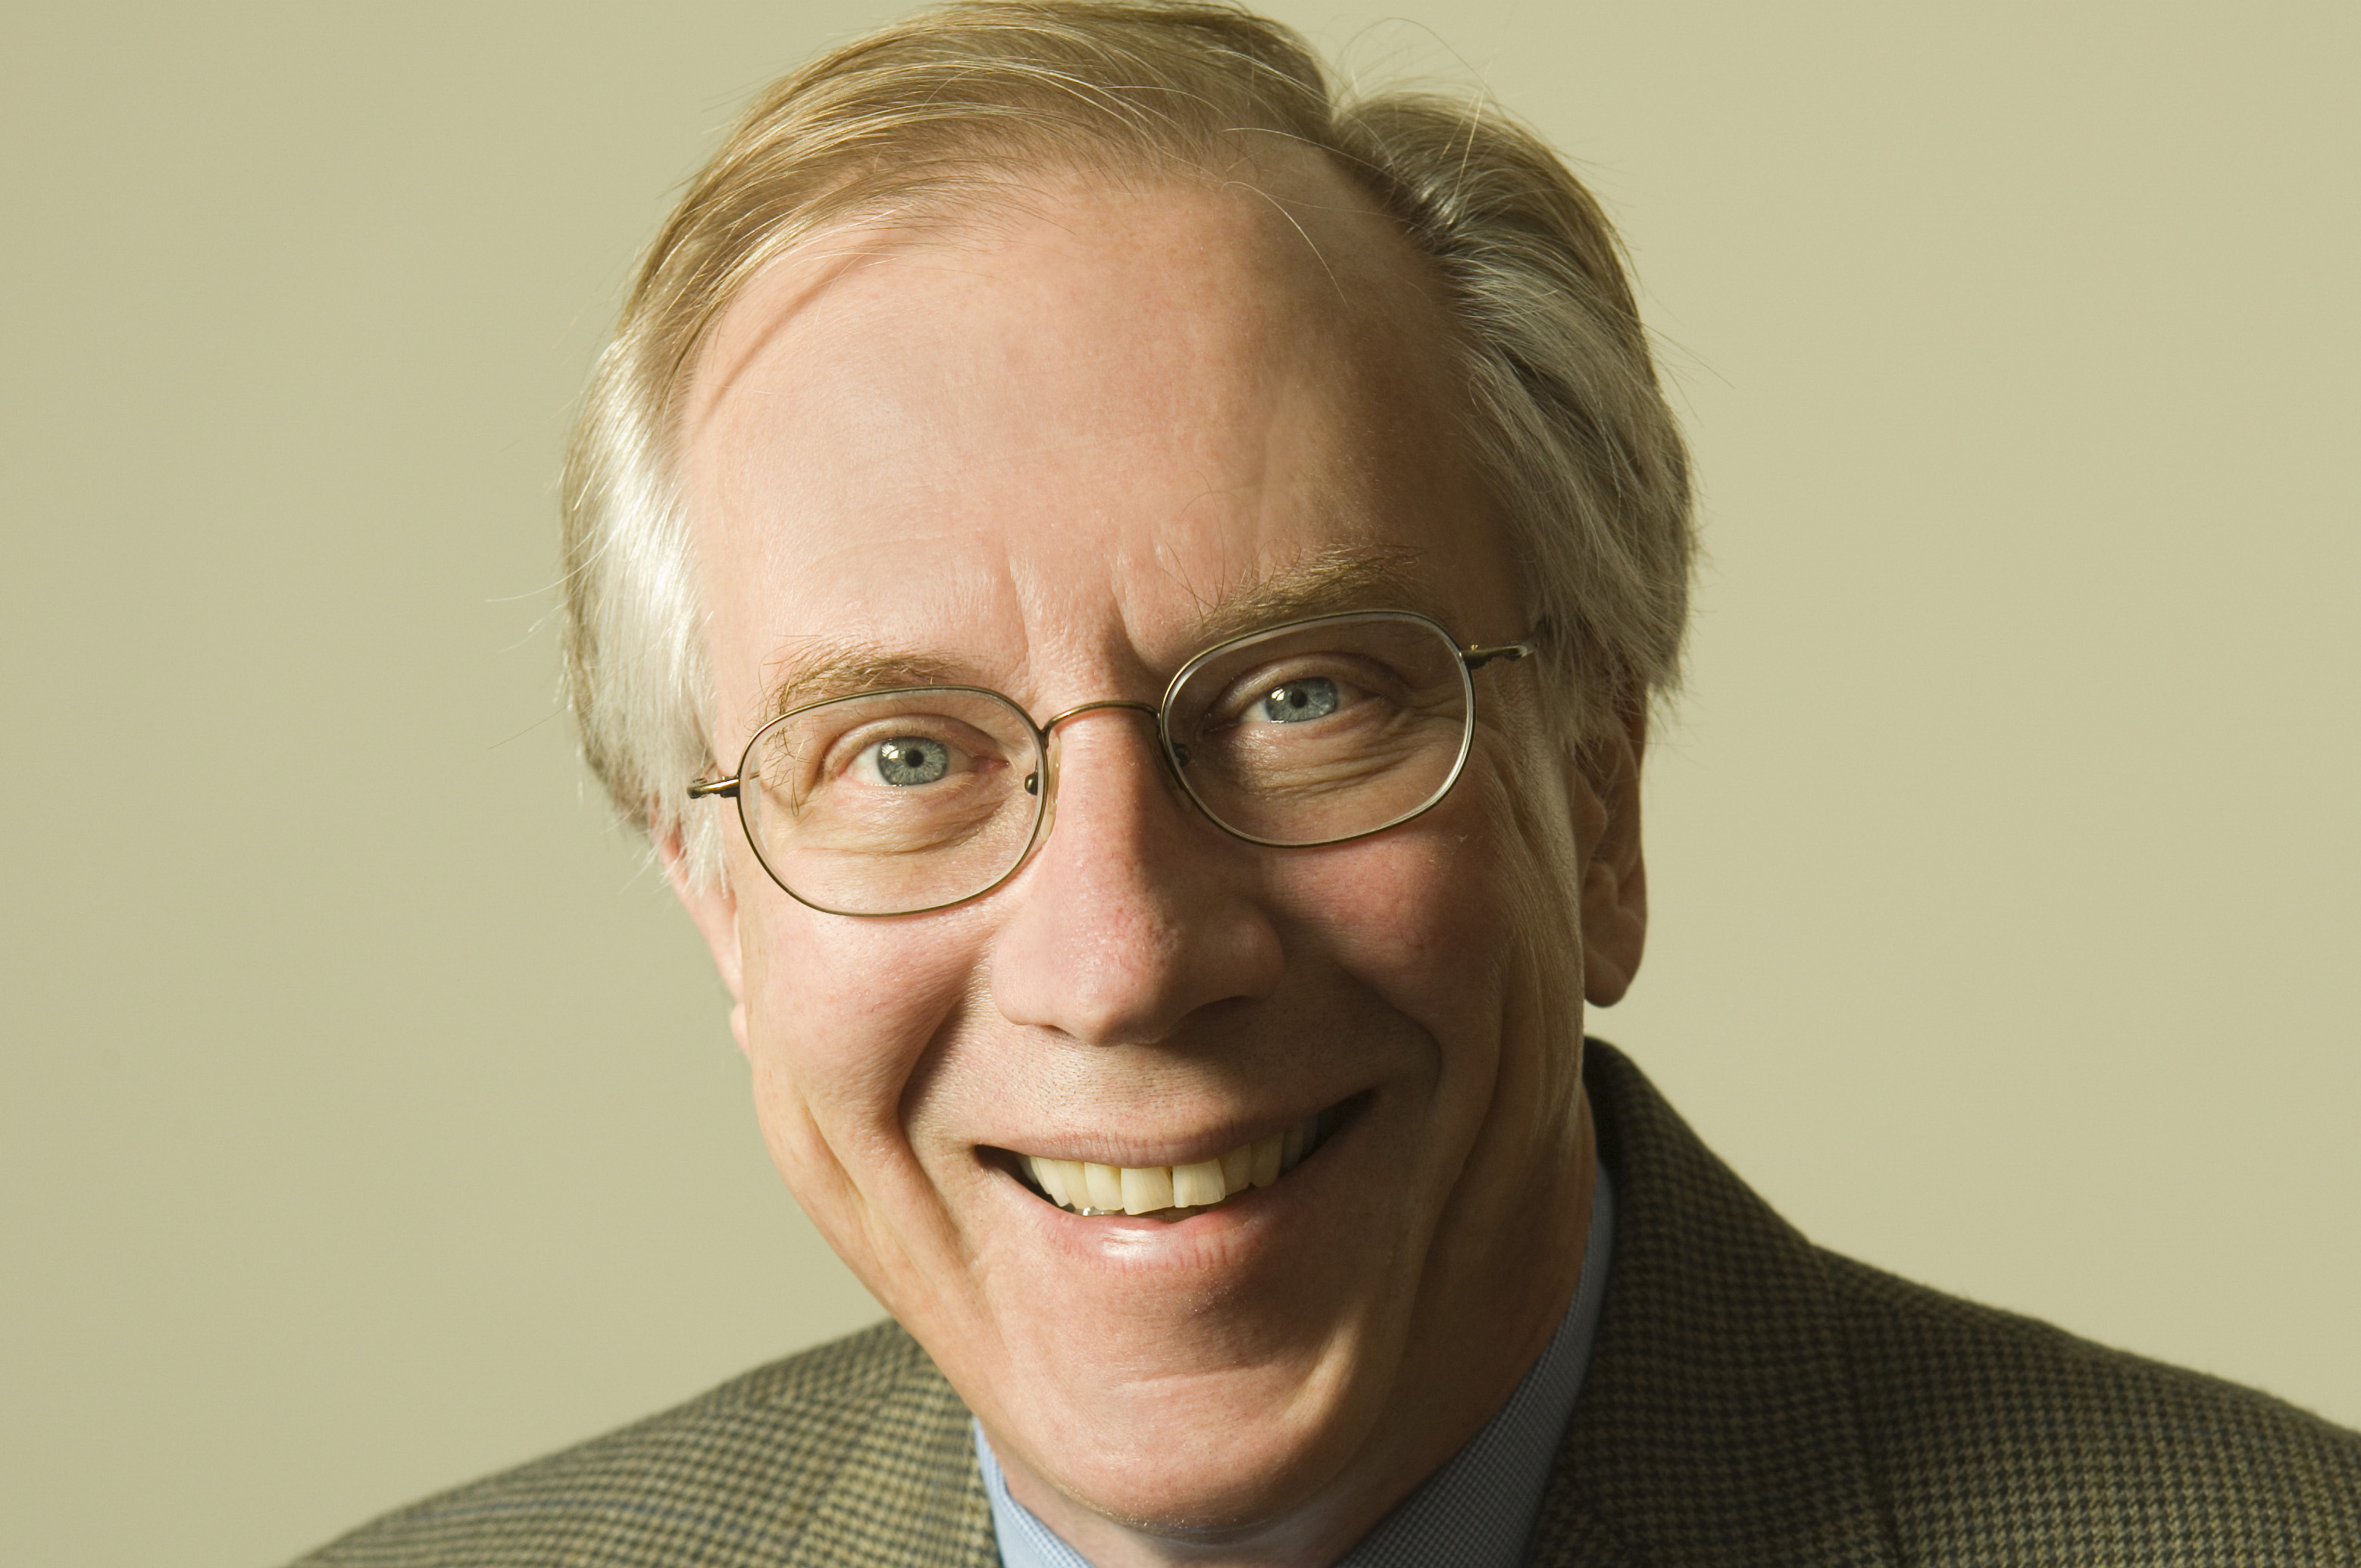 Photo of Thomas R. Cech, Ph.D.